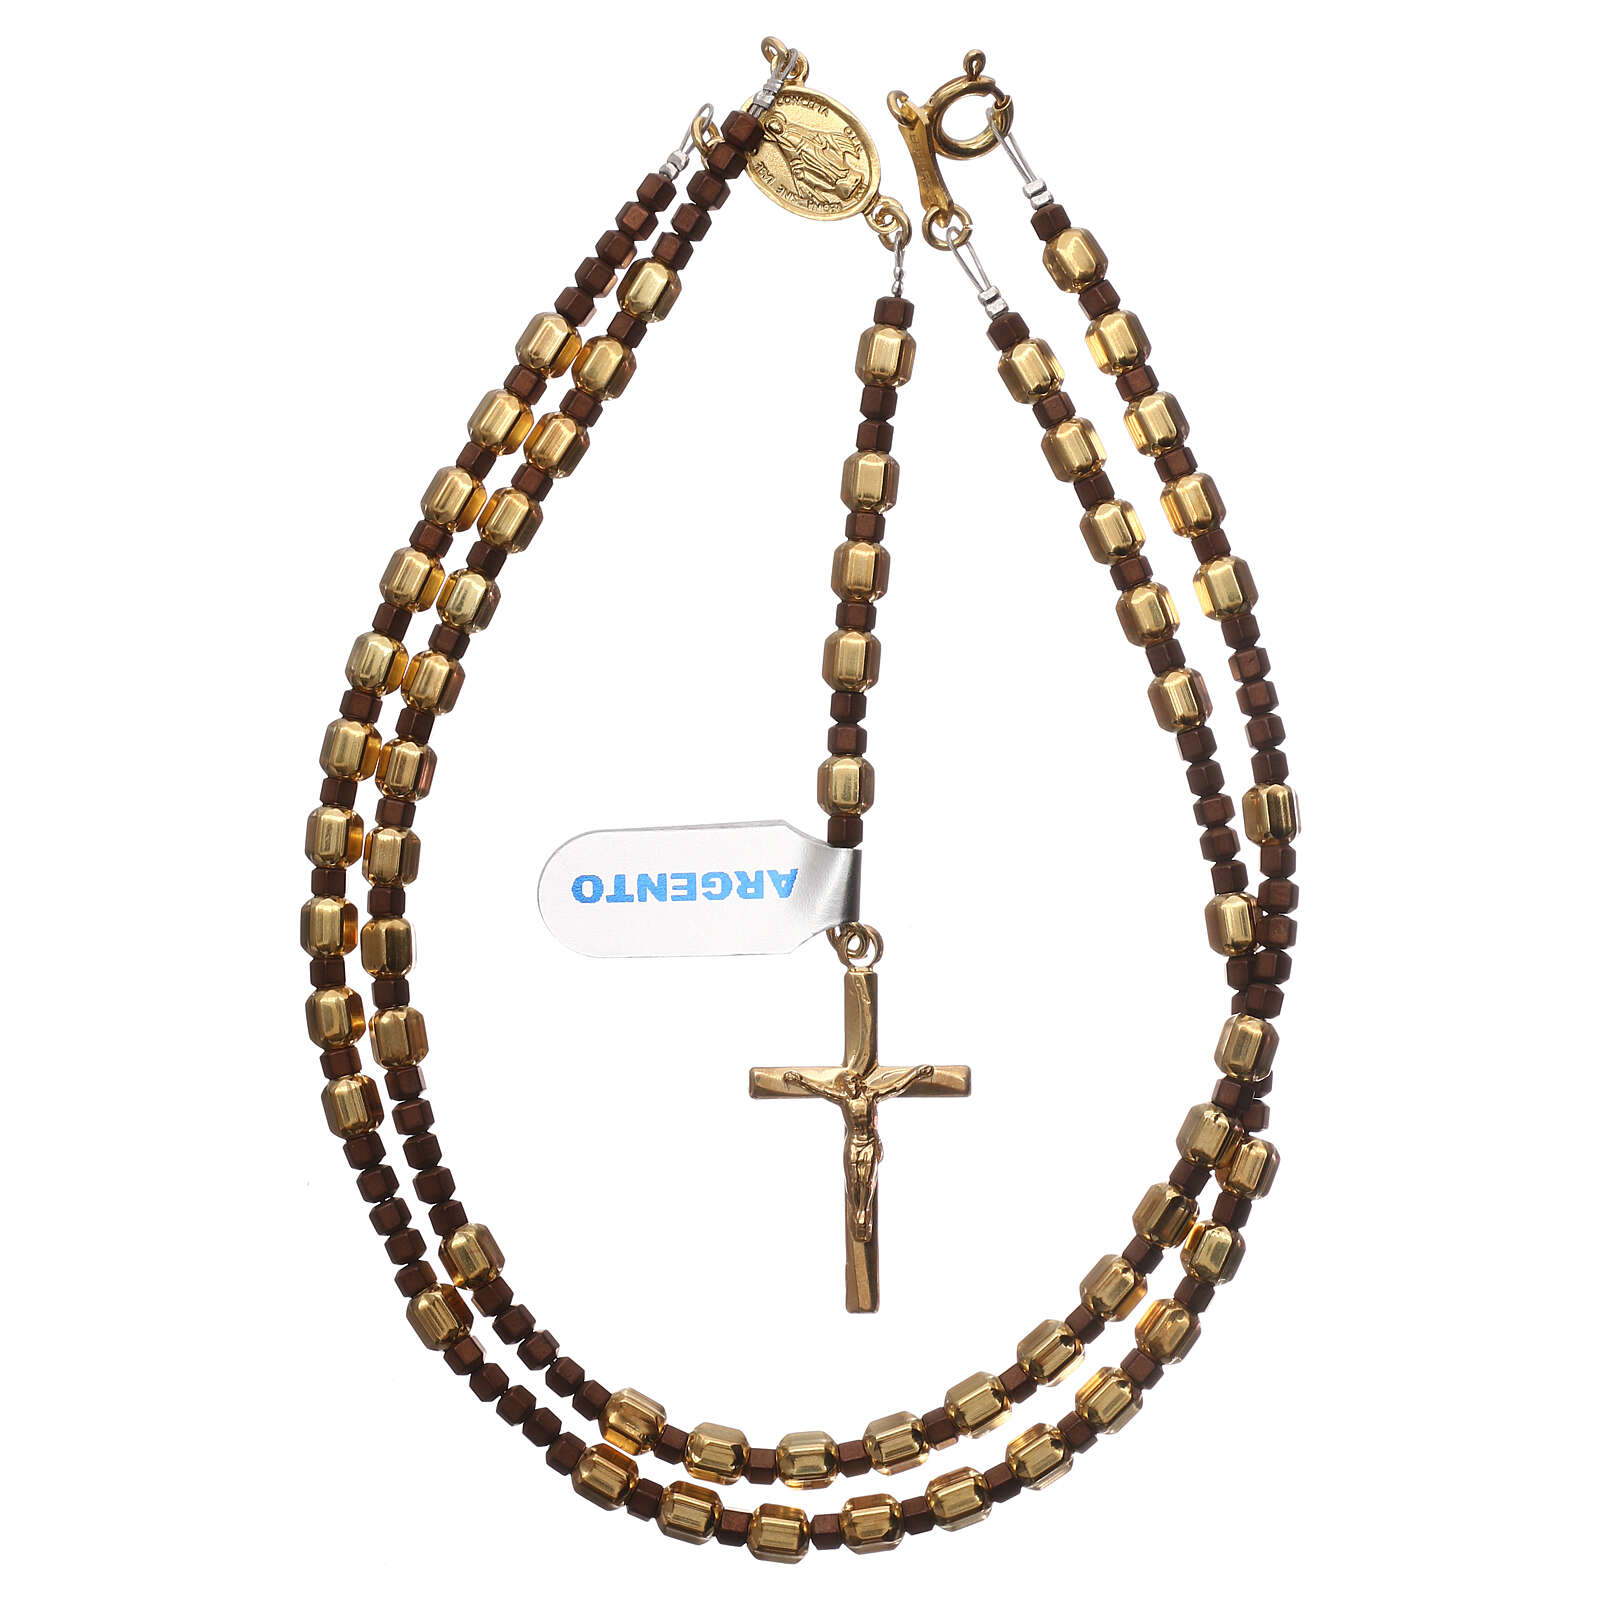 Rosary 925 gold-plated silver hexagonal beads and brown hematite 4